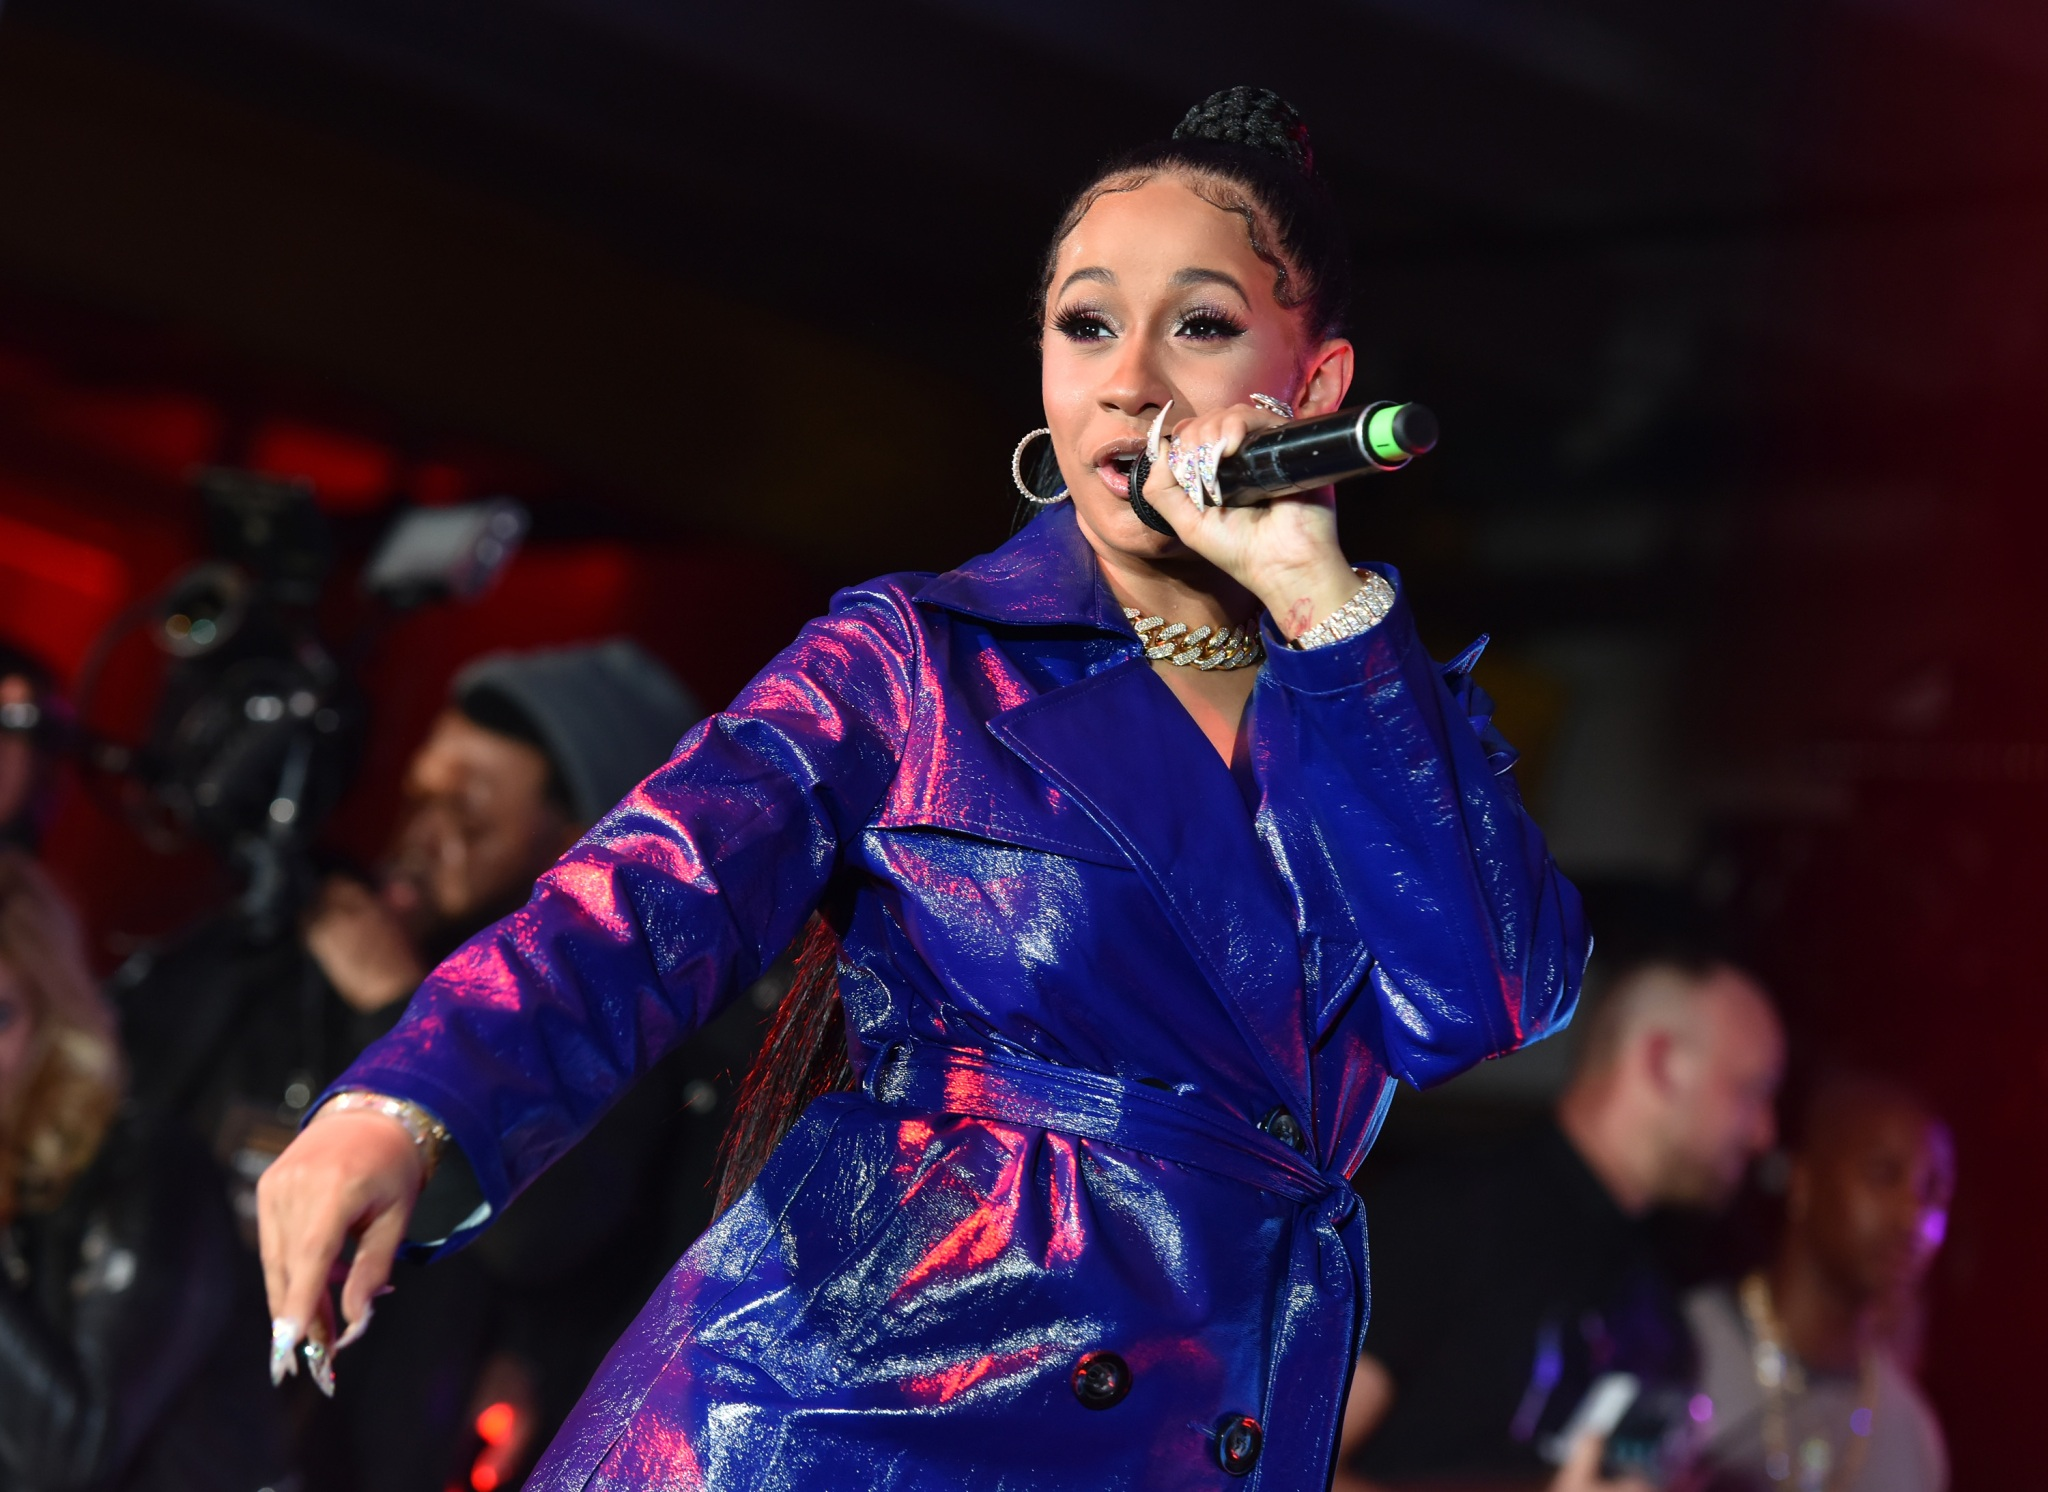 Cardi B Reportedly Getting Gang Threats After Dissing